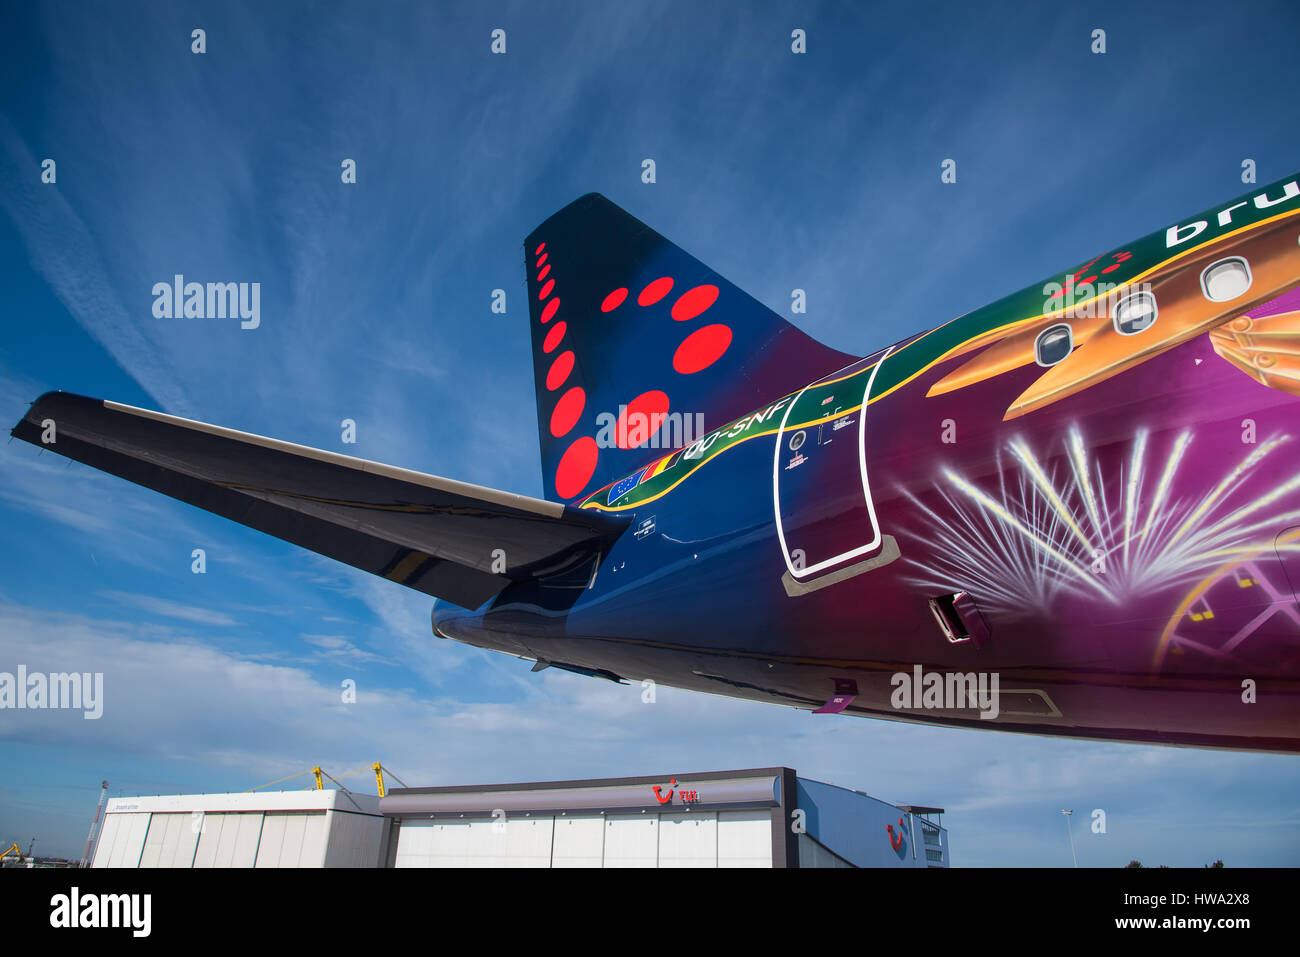 Brussels Airlines A320 parked at Brussels Airport. - Stock Image